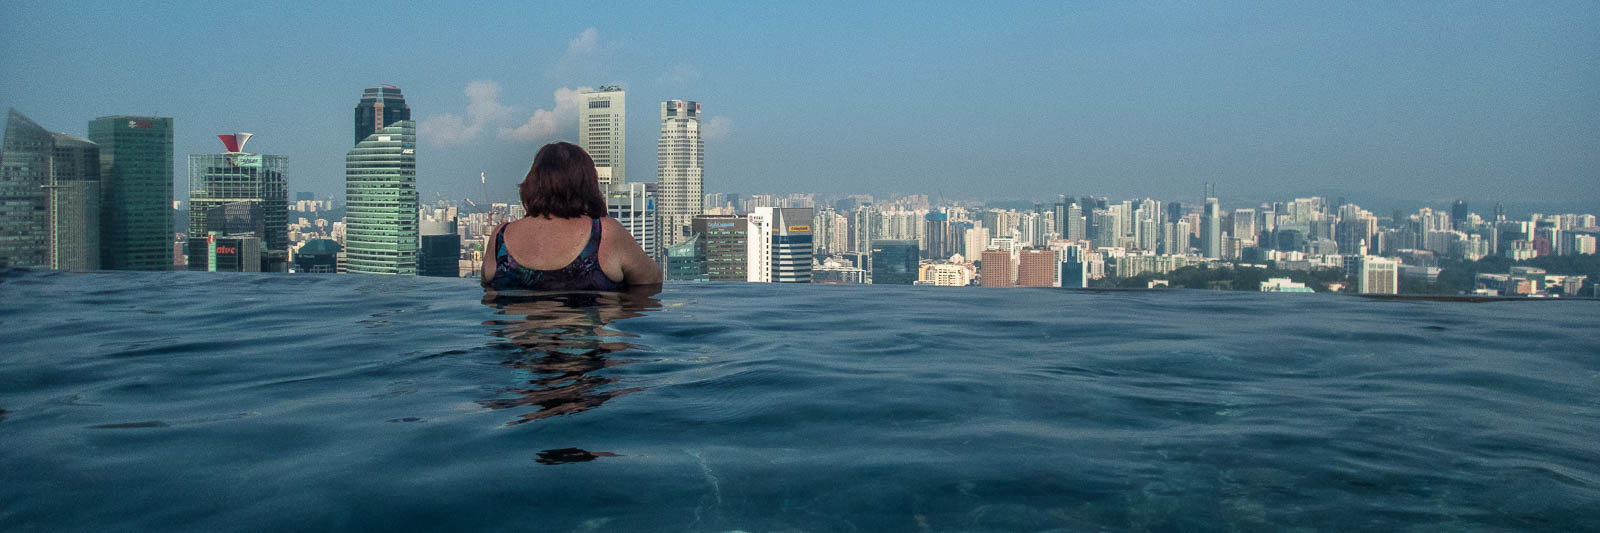 The world's largest Infinity pool and Marina Bay Sands review in Singapore